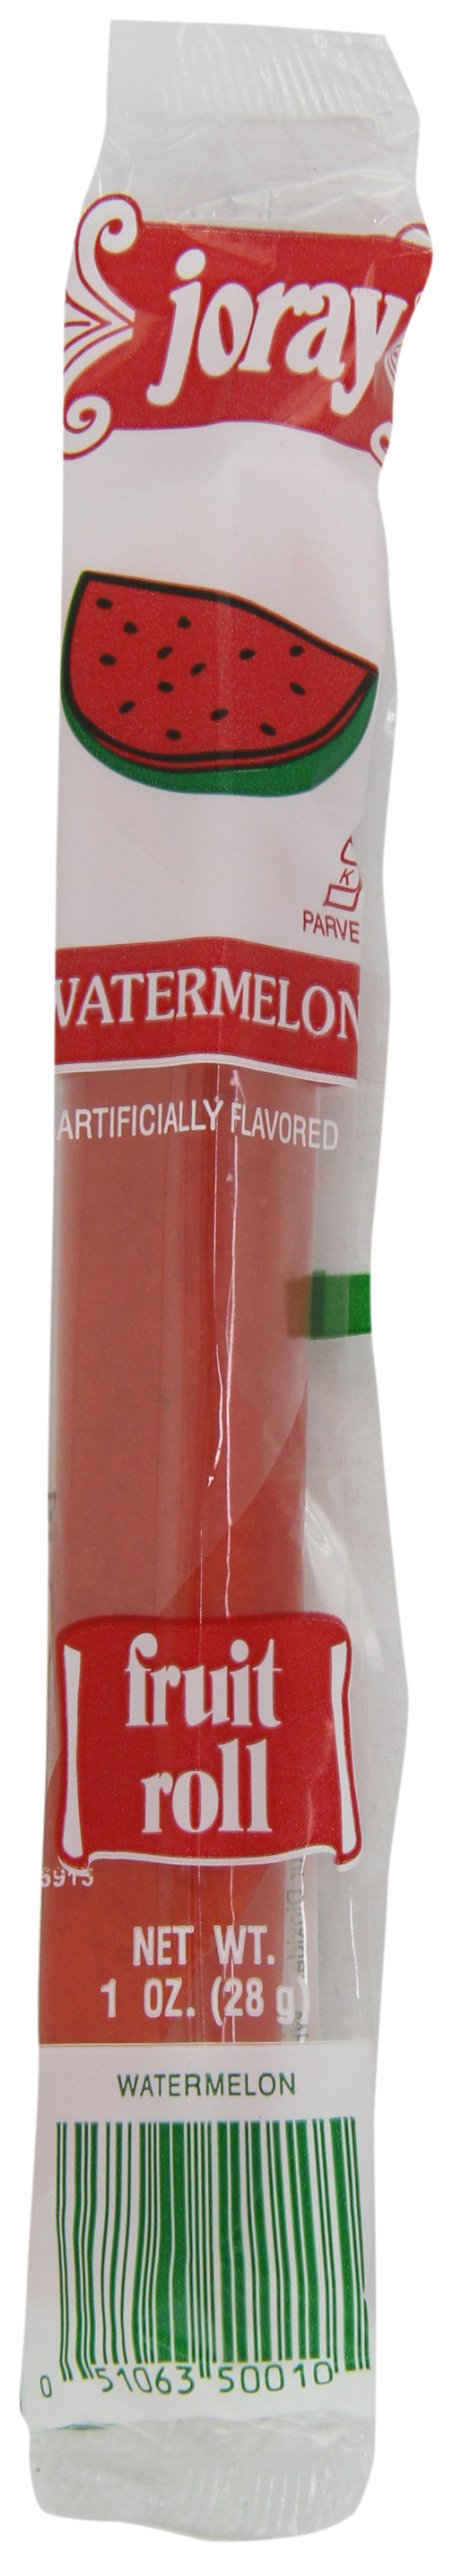 Joray Fruit Roll, Watermelon, 1-Ounce Units (Pack of 48) by Joray (Image #1)